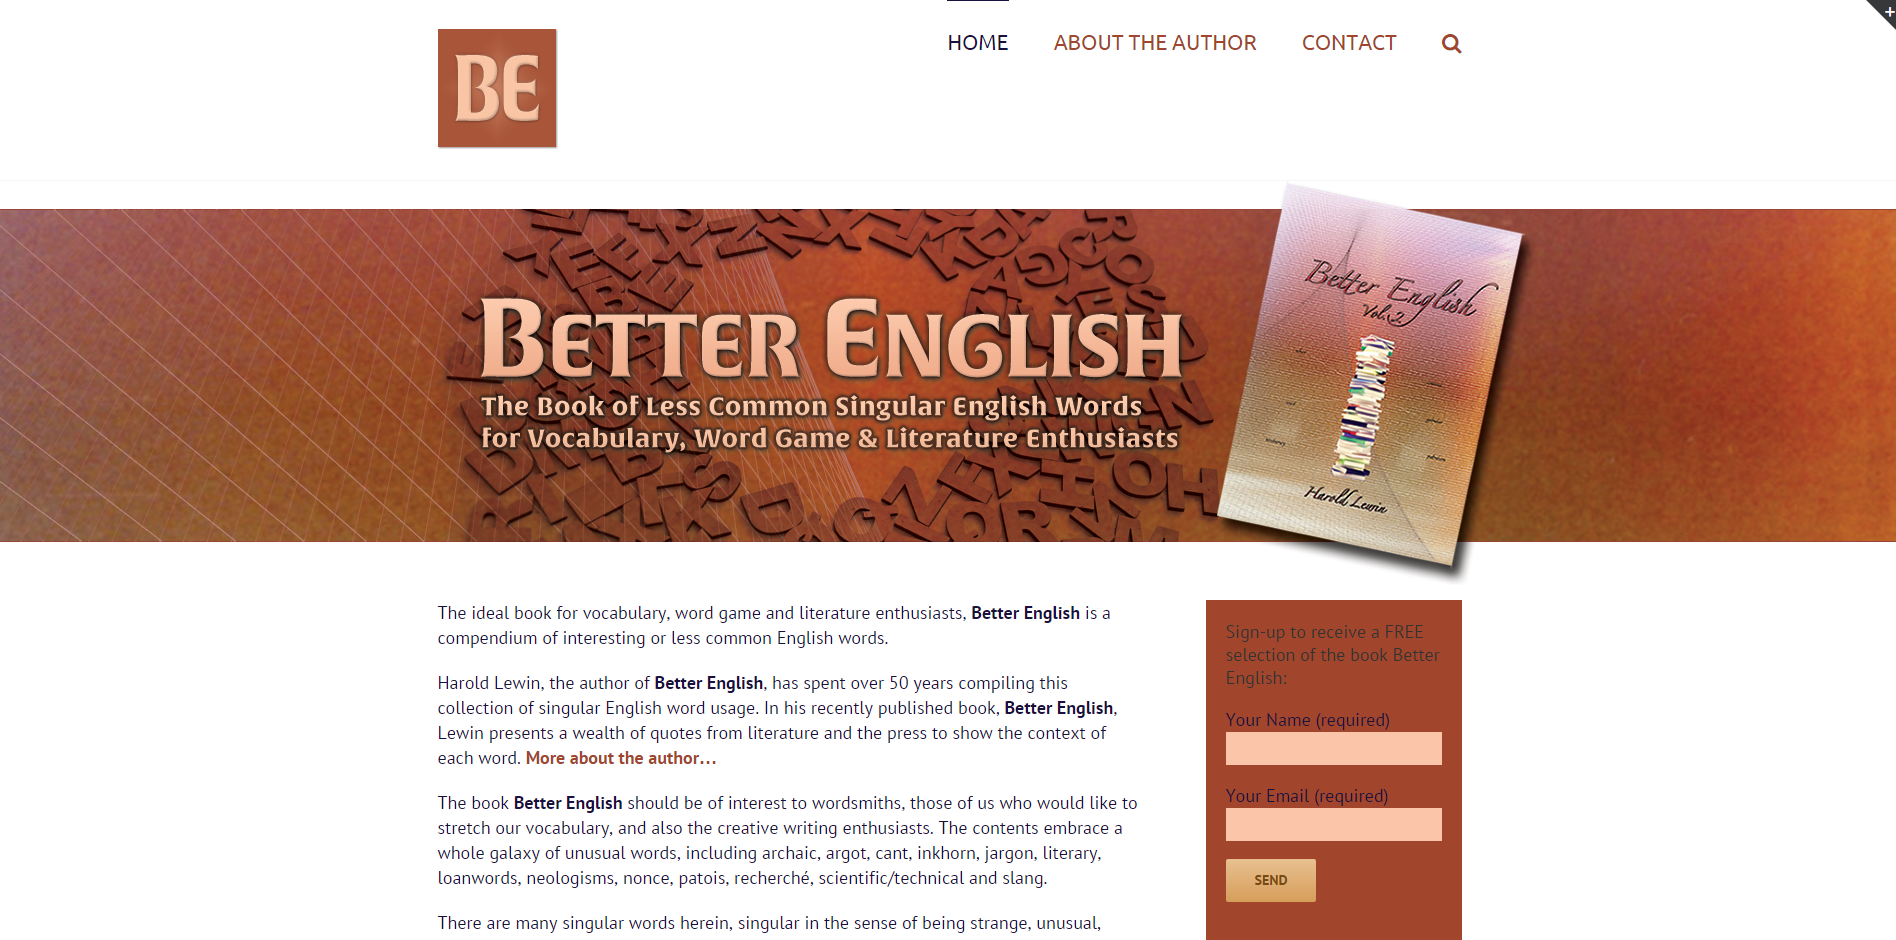 Better English Book site design - image